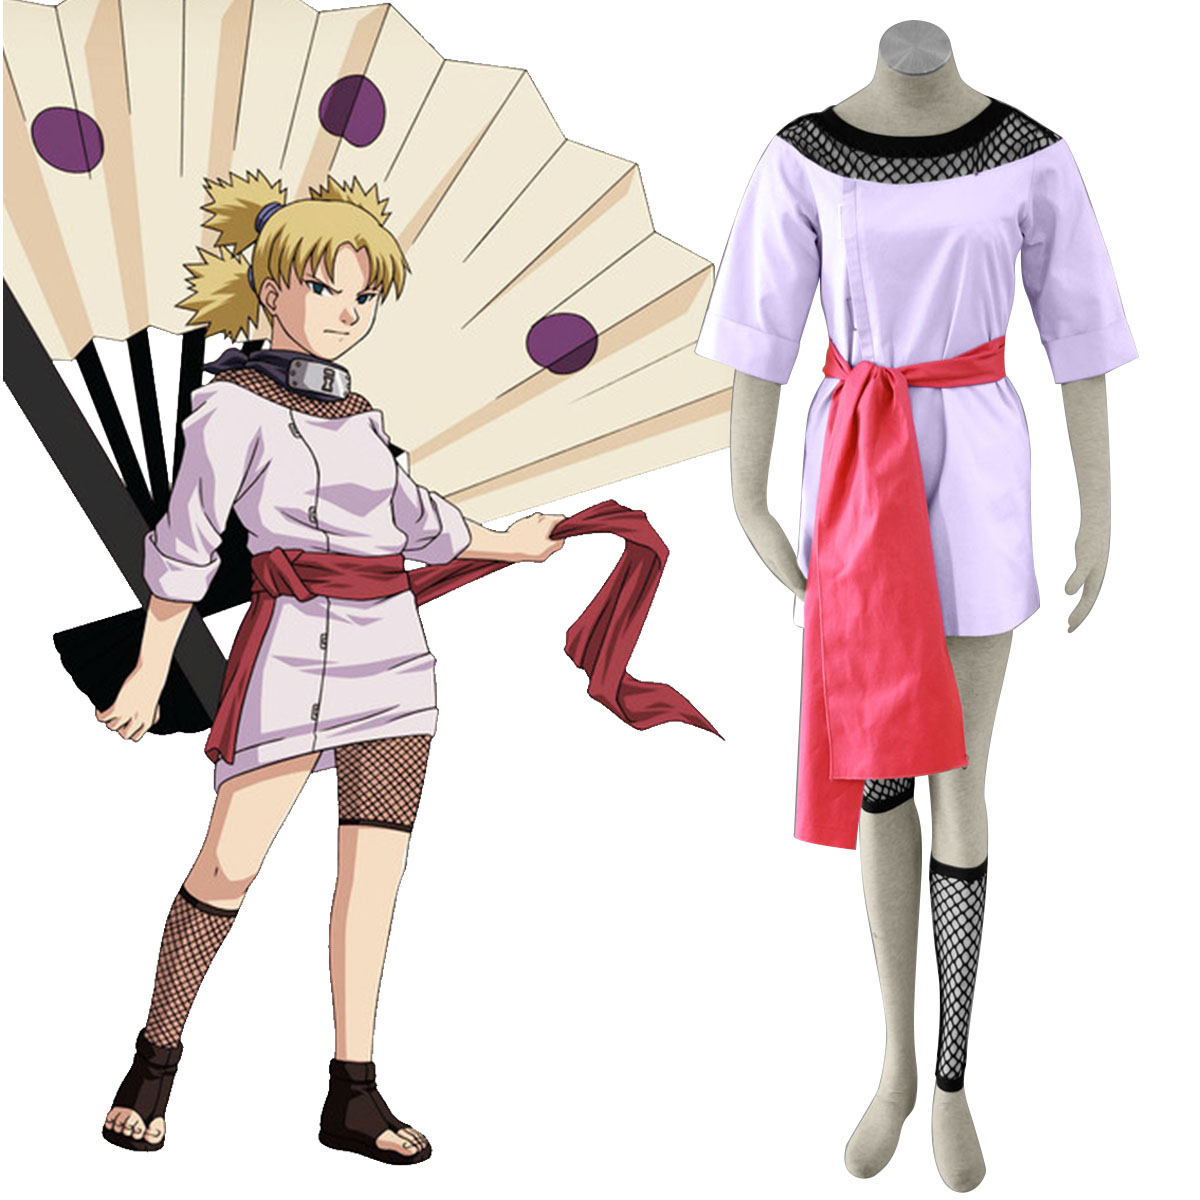 Naruto Temari 1 Anime Cosplay Costumes Outfit